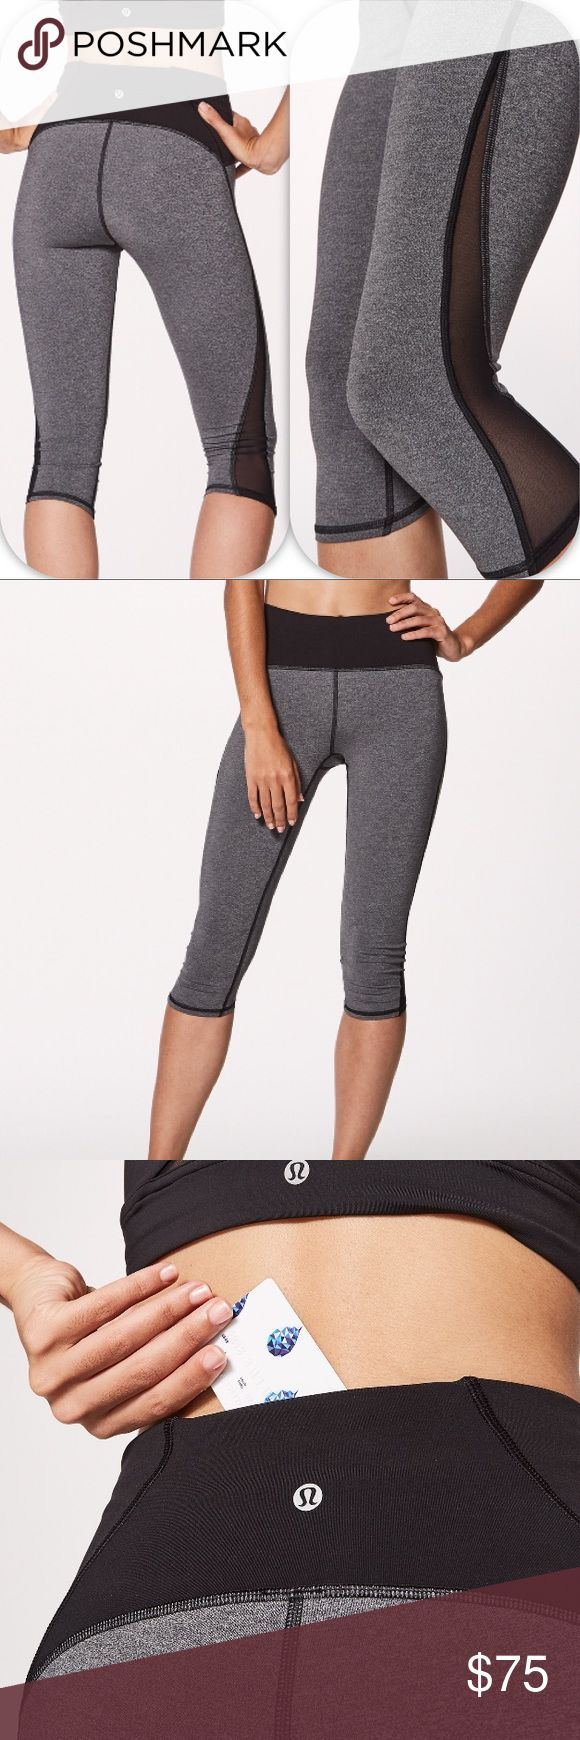 NWT HBLK LULULEMON TRAIN TIMES CROP - - Size 6 Brand: Lululemon Athletica train Times Crop         Condition: New with tag || Size 6  ||  HBLK Heather black   🚩NO TRADES  🚩NO LOWBALL OFFERS  🚩NO RUDE COMMENTS  🚩NO MODELING  ☀️Please don't discuss prices in the comment box. Make a reasonable offer and I'll either counter, accept or decline.   I will try to respond to all inquiries in a timely manner. Please check out the rest of my closet, I have various brands. Some new with tag, others…